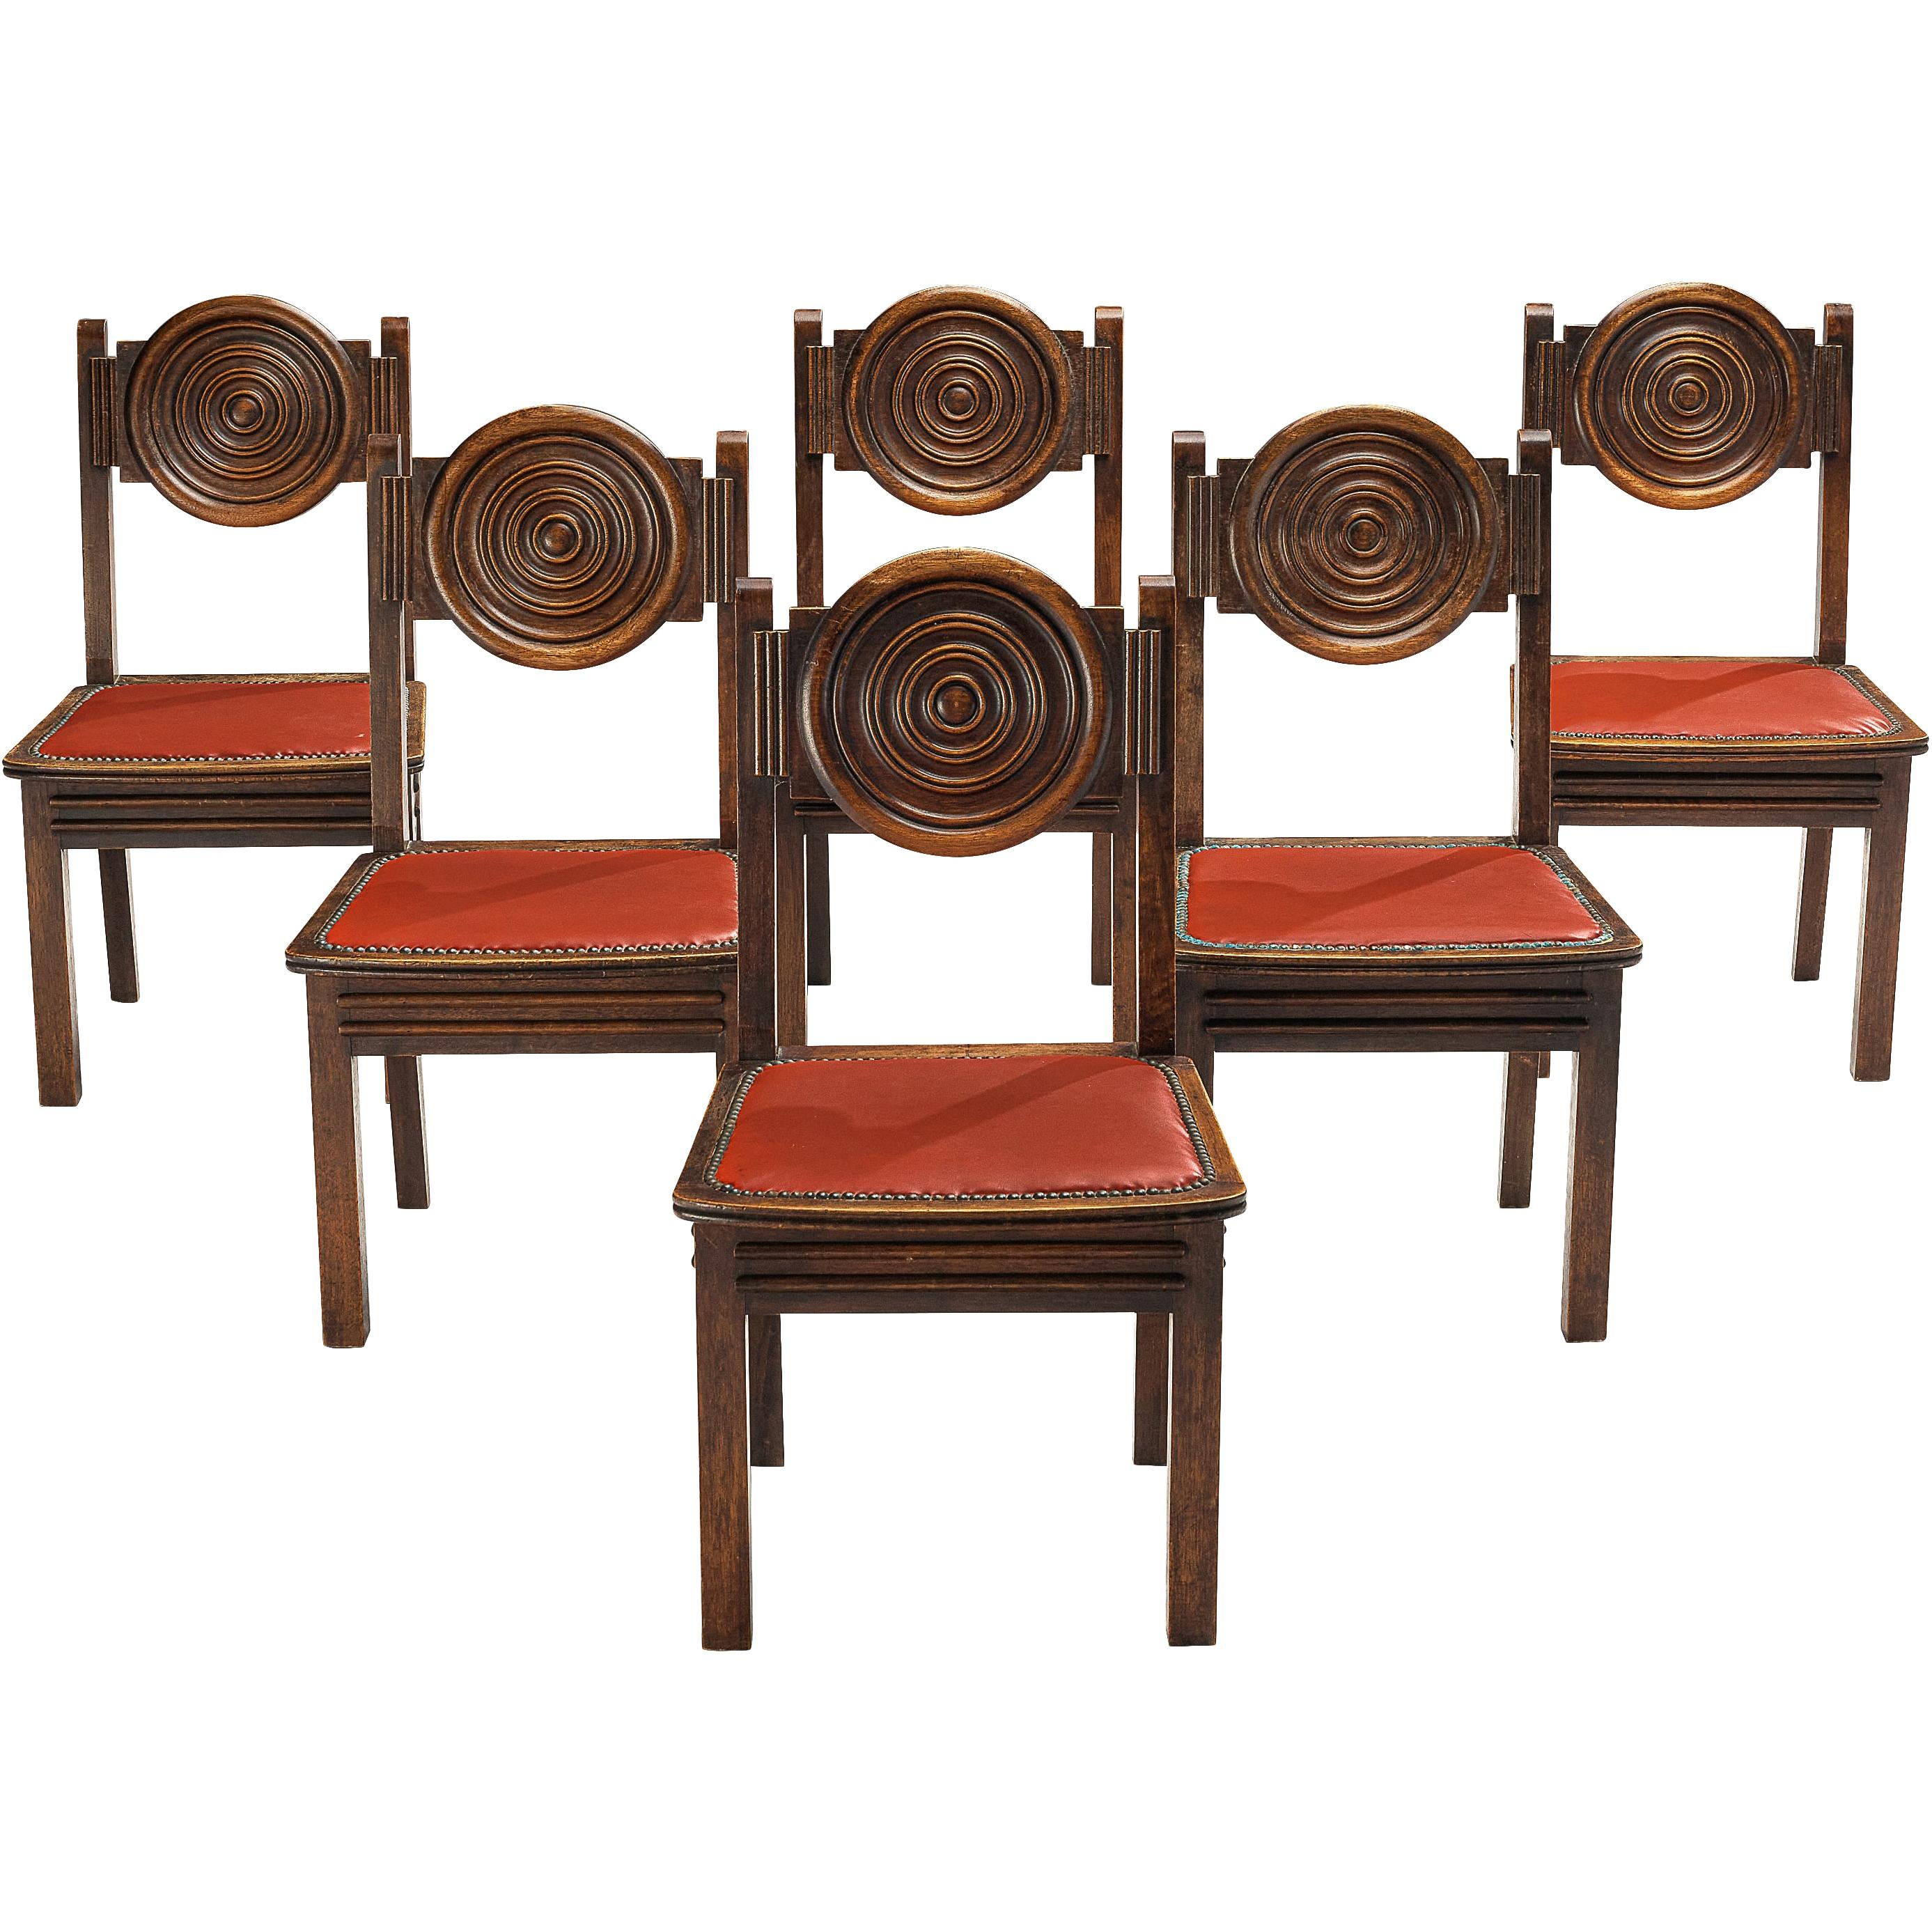 French Art Deco Dining Chairs in Stained Oak and Red Leatherette